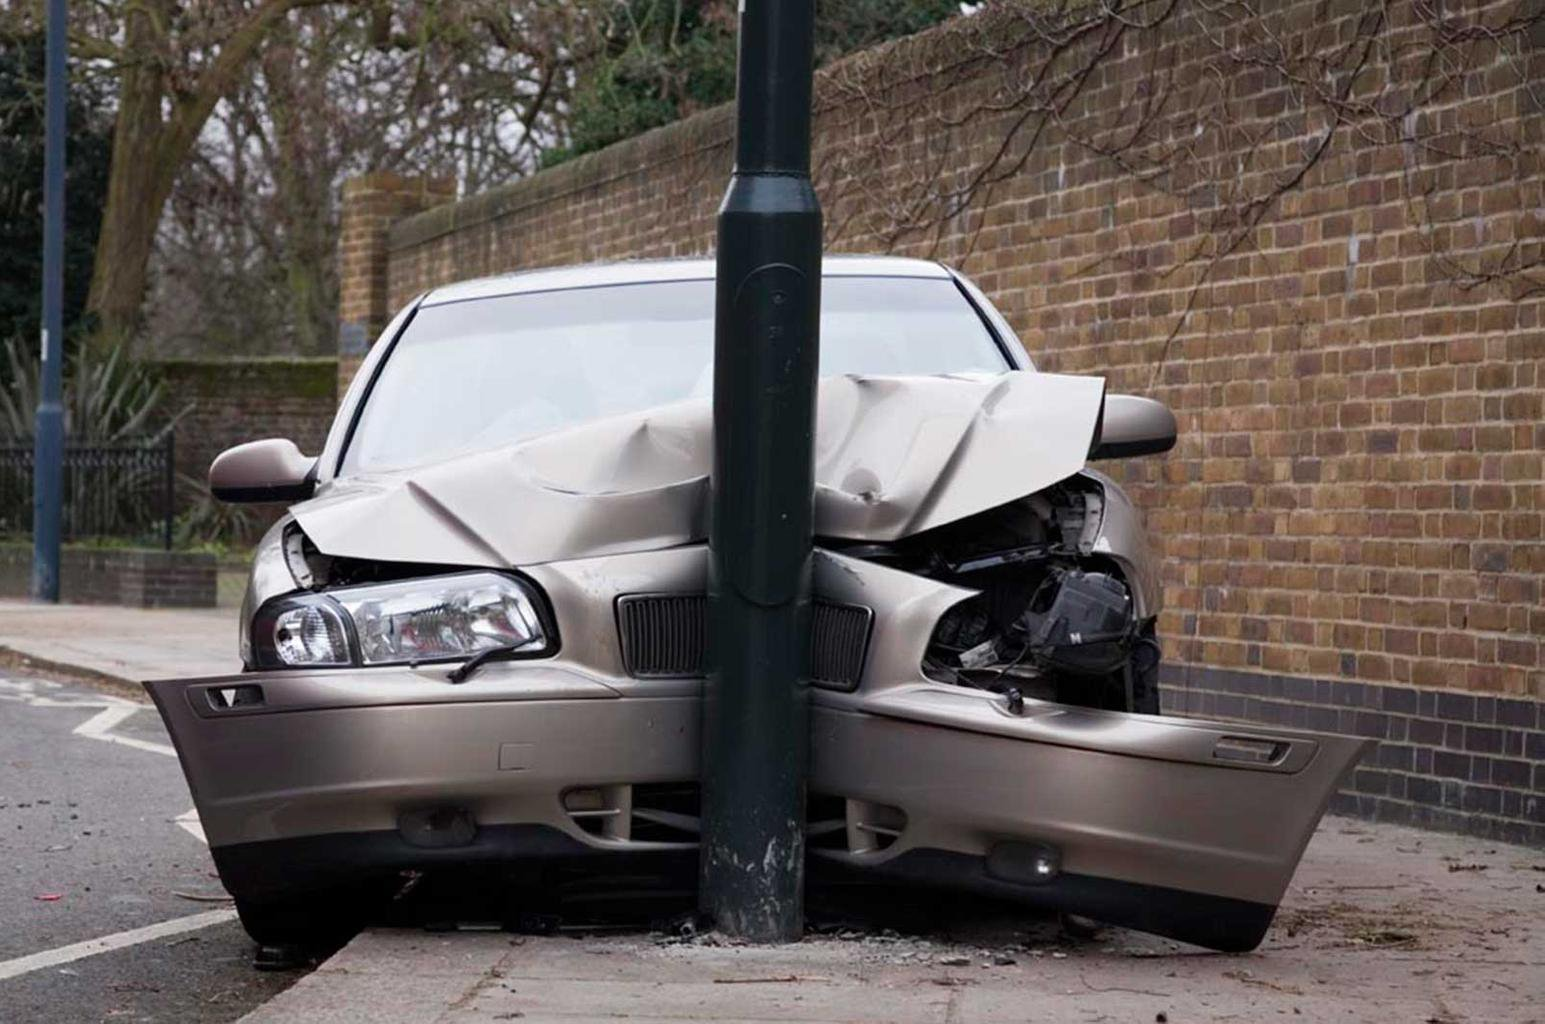 UK car insurance costs reach record high